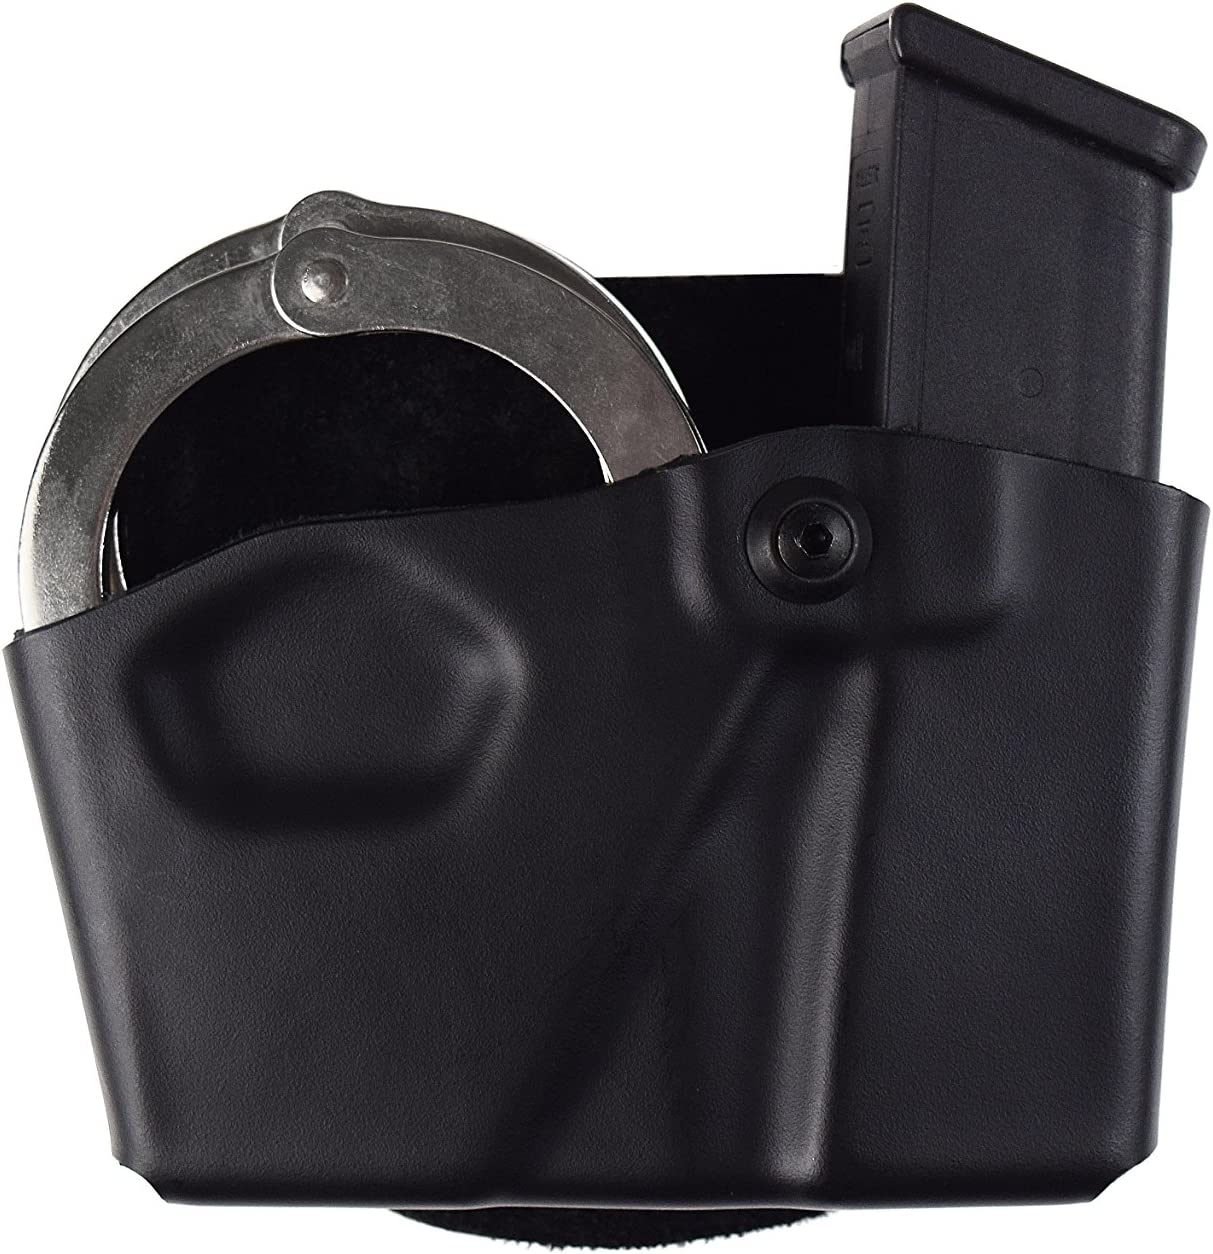 Safariland 573 Spring new work Glock 17 22 Open Phoenix Mall Pouch Top with H Magazine Paddle